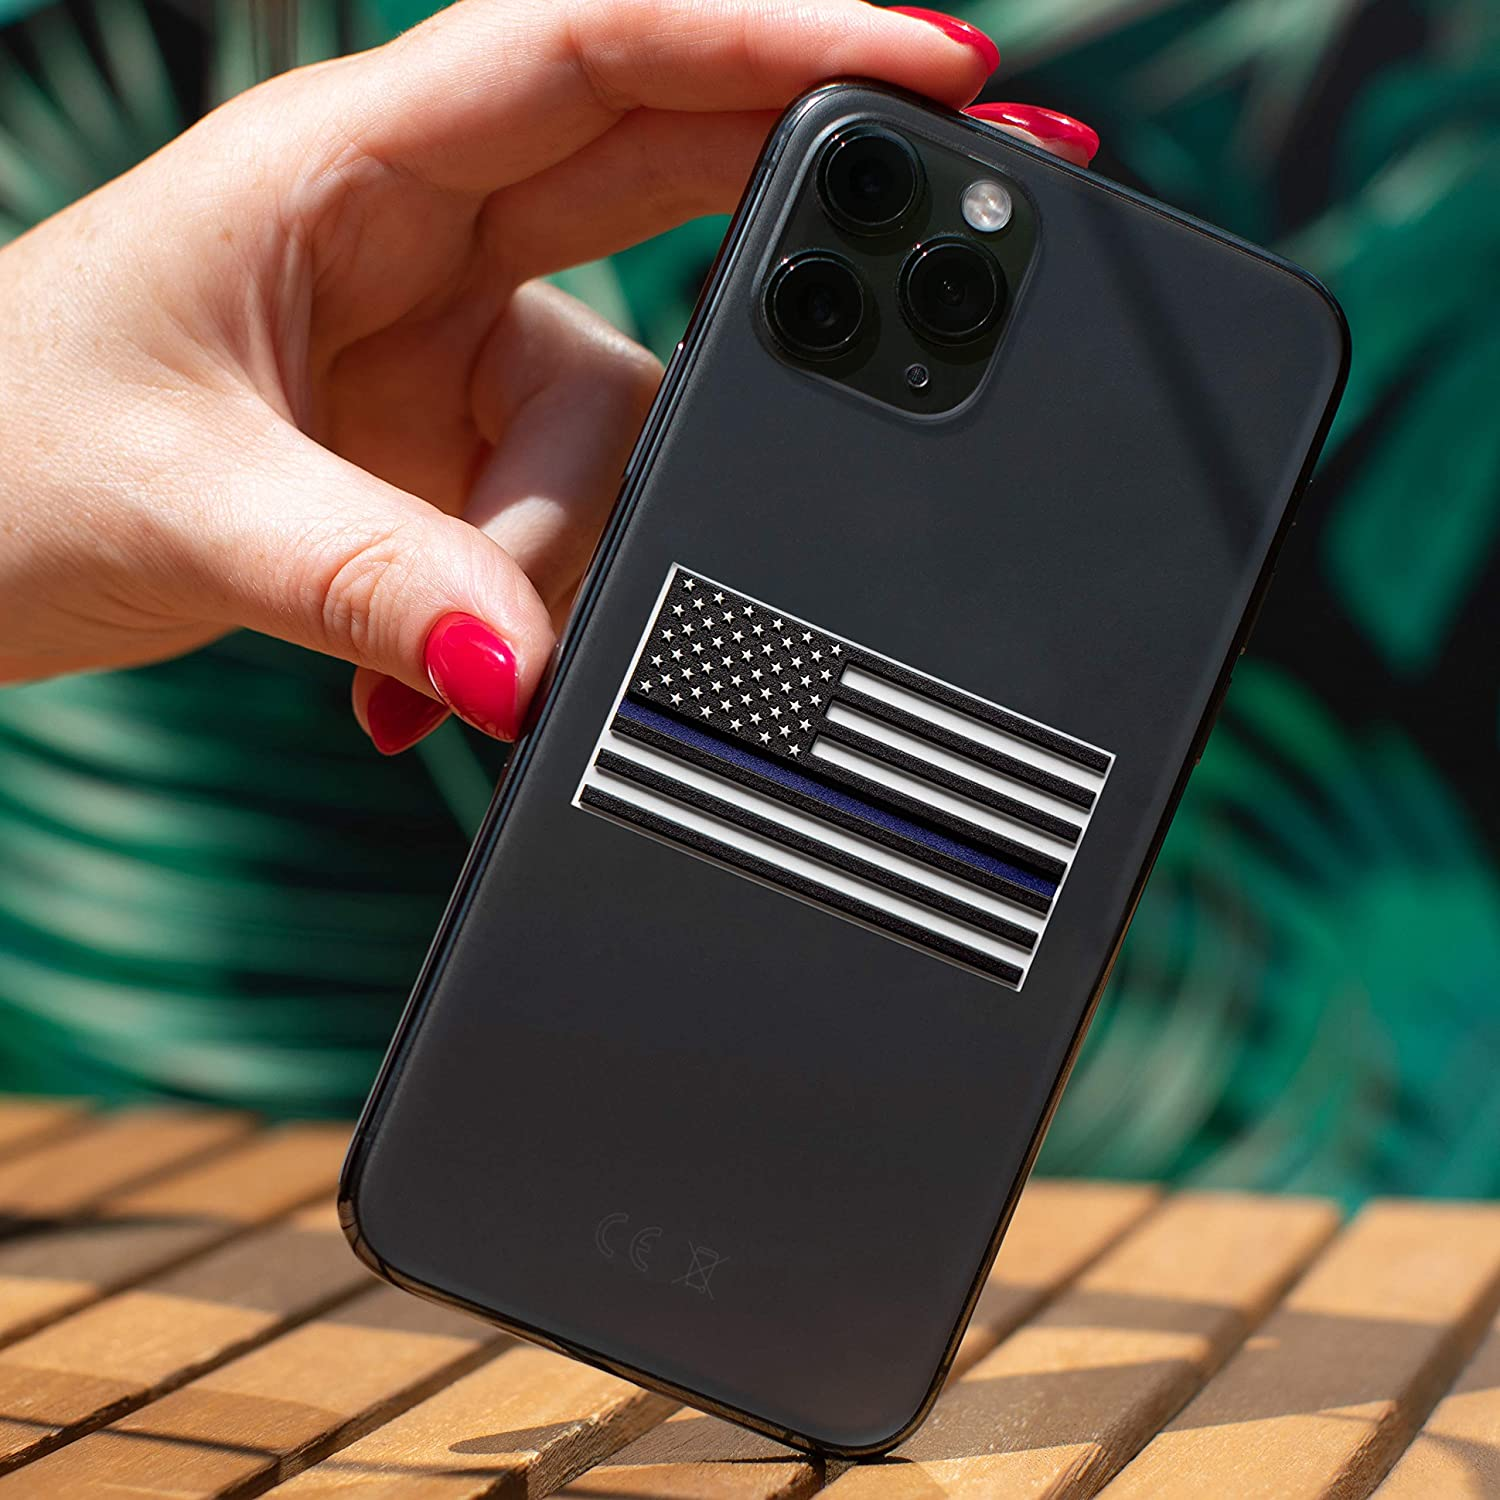 Thin Blue Line Flag Decal – 3D Premium Quality Thin Blue Line Stickers for Phone – 7 in Pack Support Police Flag Sticker 2 х 1.05 Inch Vinyl American Flag Decals Laptop – Raised Stars Stripes